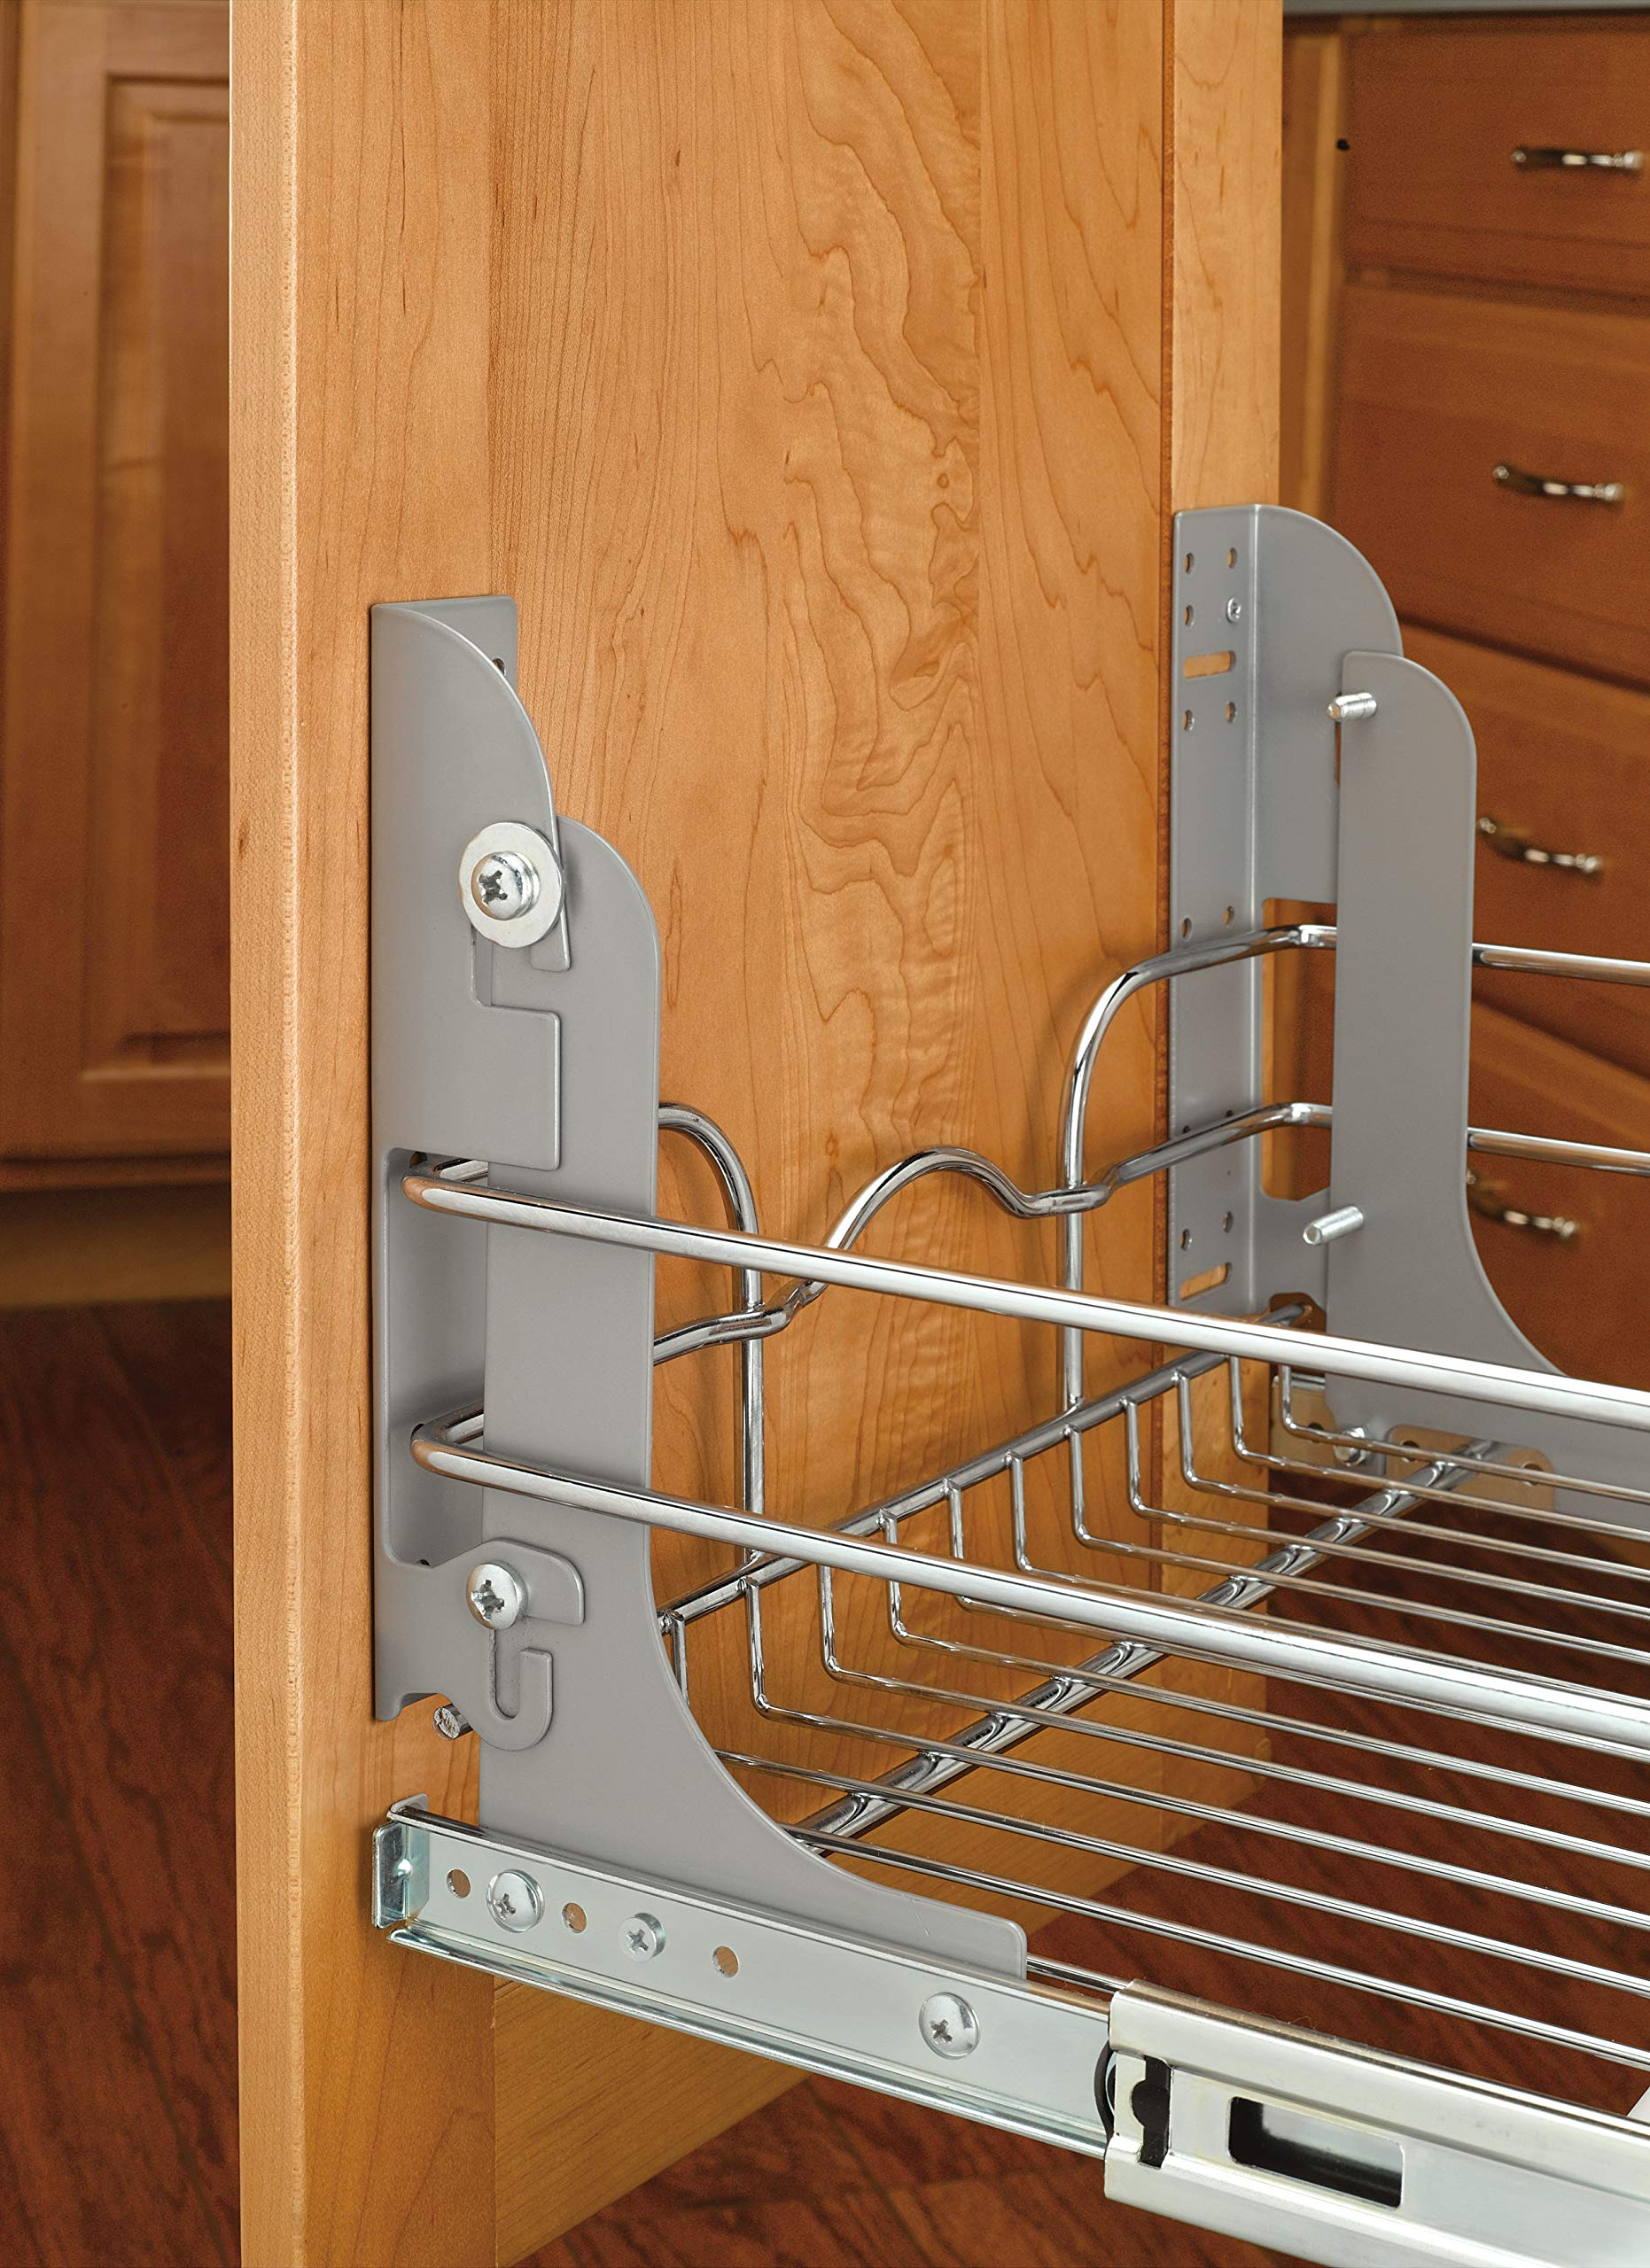 Rev-A-Shelf - 5WB1-1222-CR - 11 3/8 in. W x 22 in. D Base Cabinet Pull-Out Chrome Wire Basket by Rev-A-Shelf (Image #3)